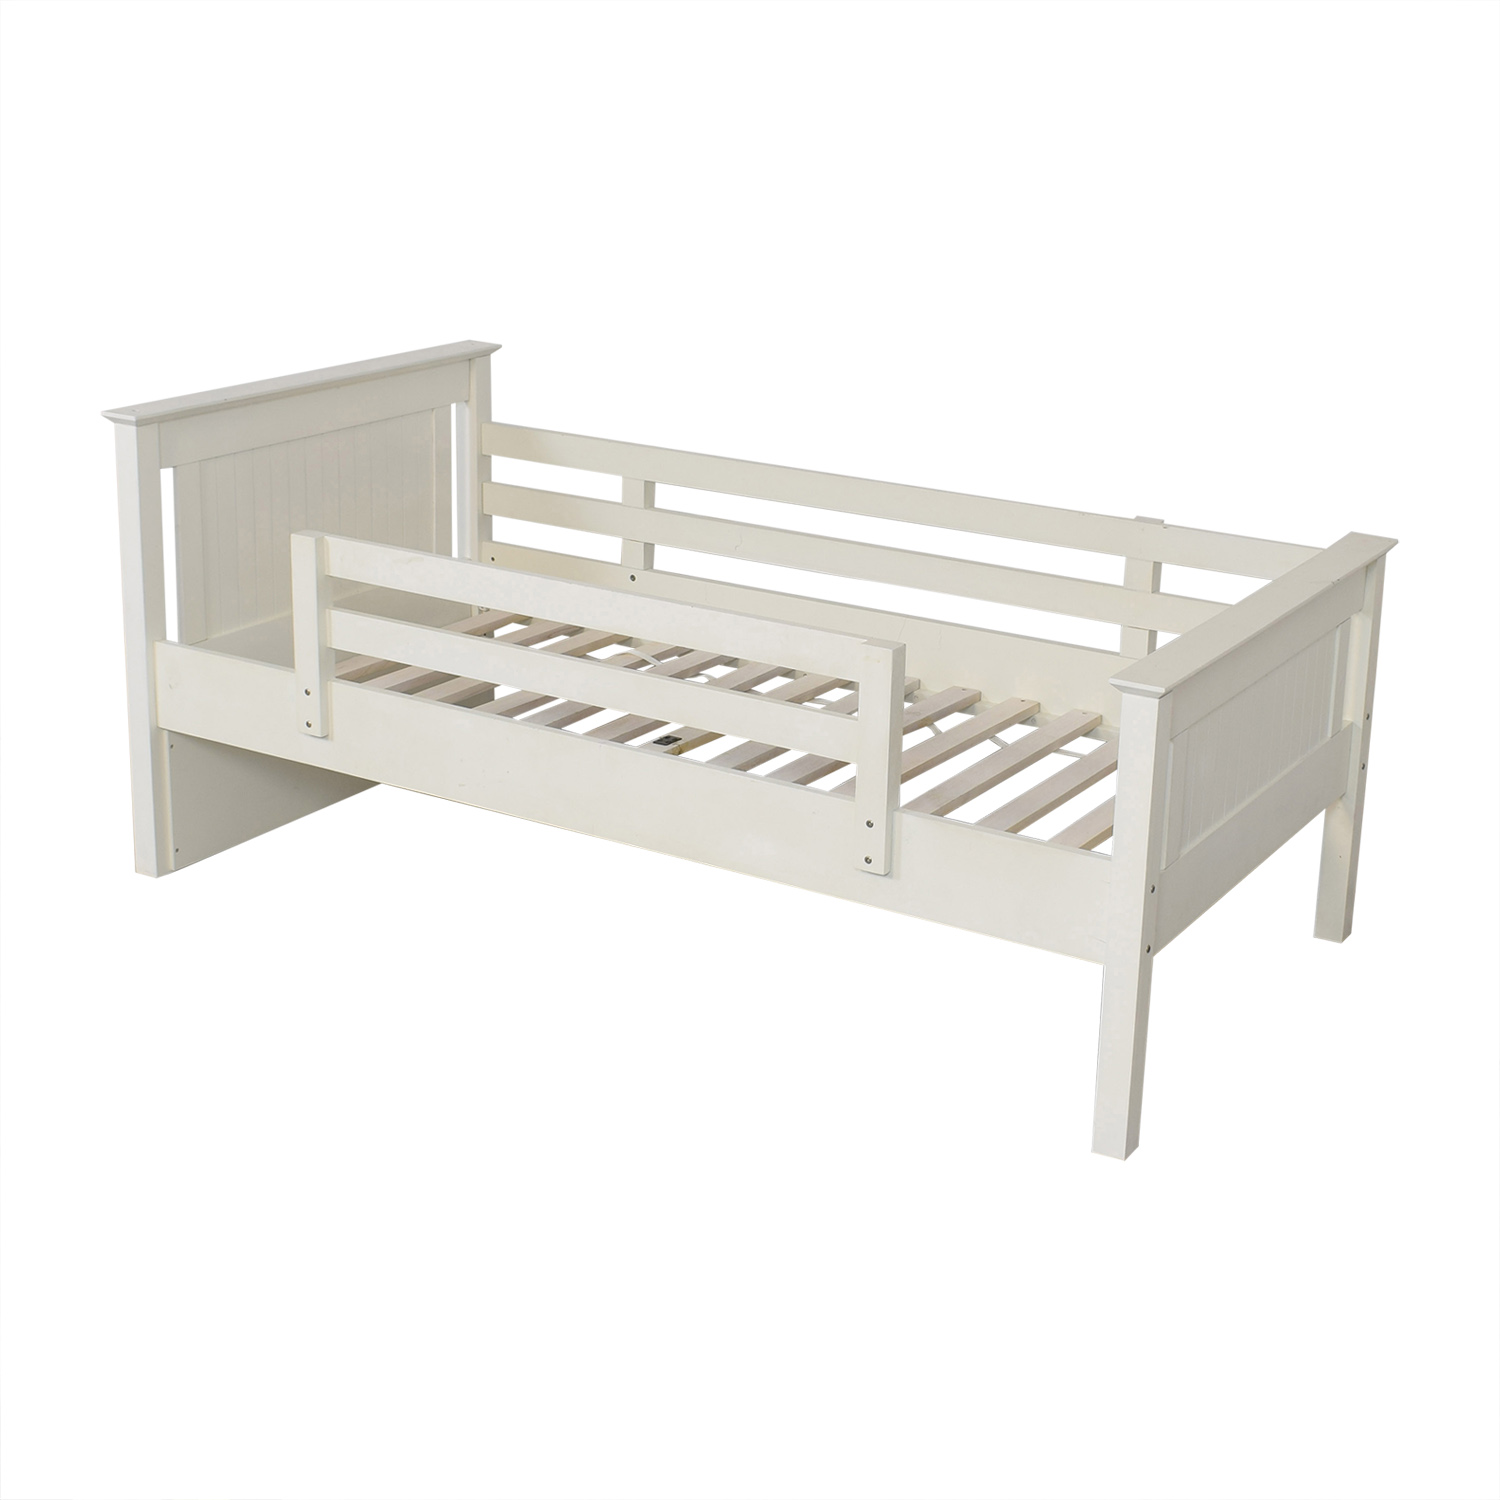 buy Epoch Design Twin Bed with Protective Rail Epoch Design Bed Frames